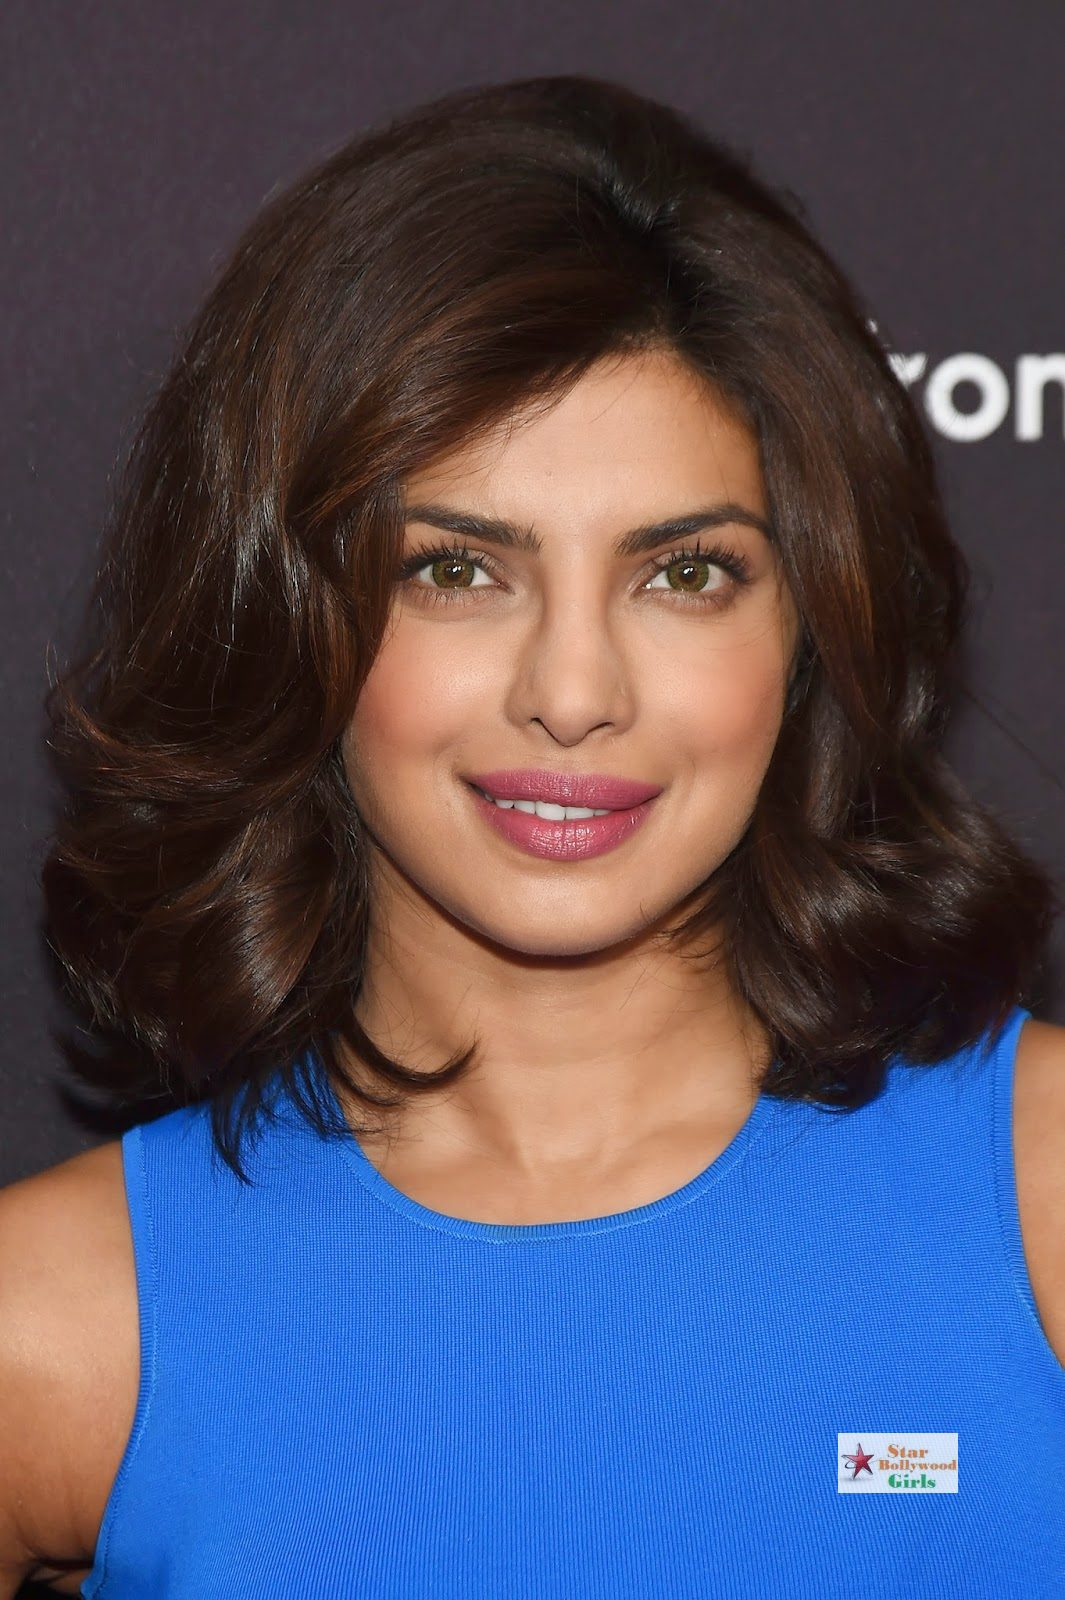 Priyanka Chopra Looks Sexy In Blue Figure Hugging Dress As She Attends The 2015 ABC Upfront At Avery Fisher Hall, Lincoln Center In New York1